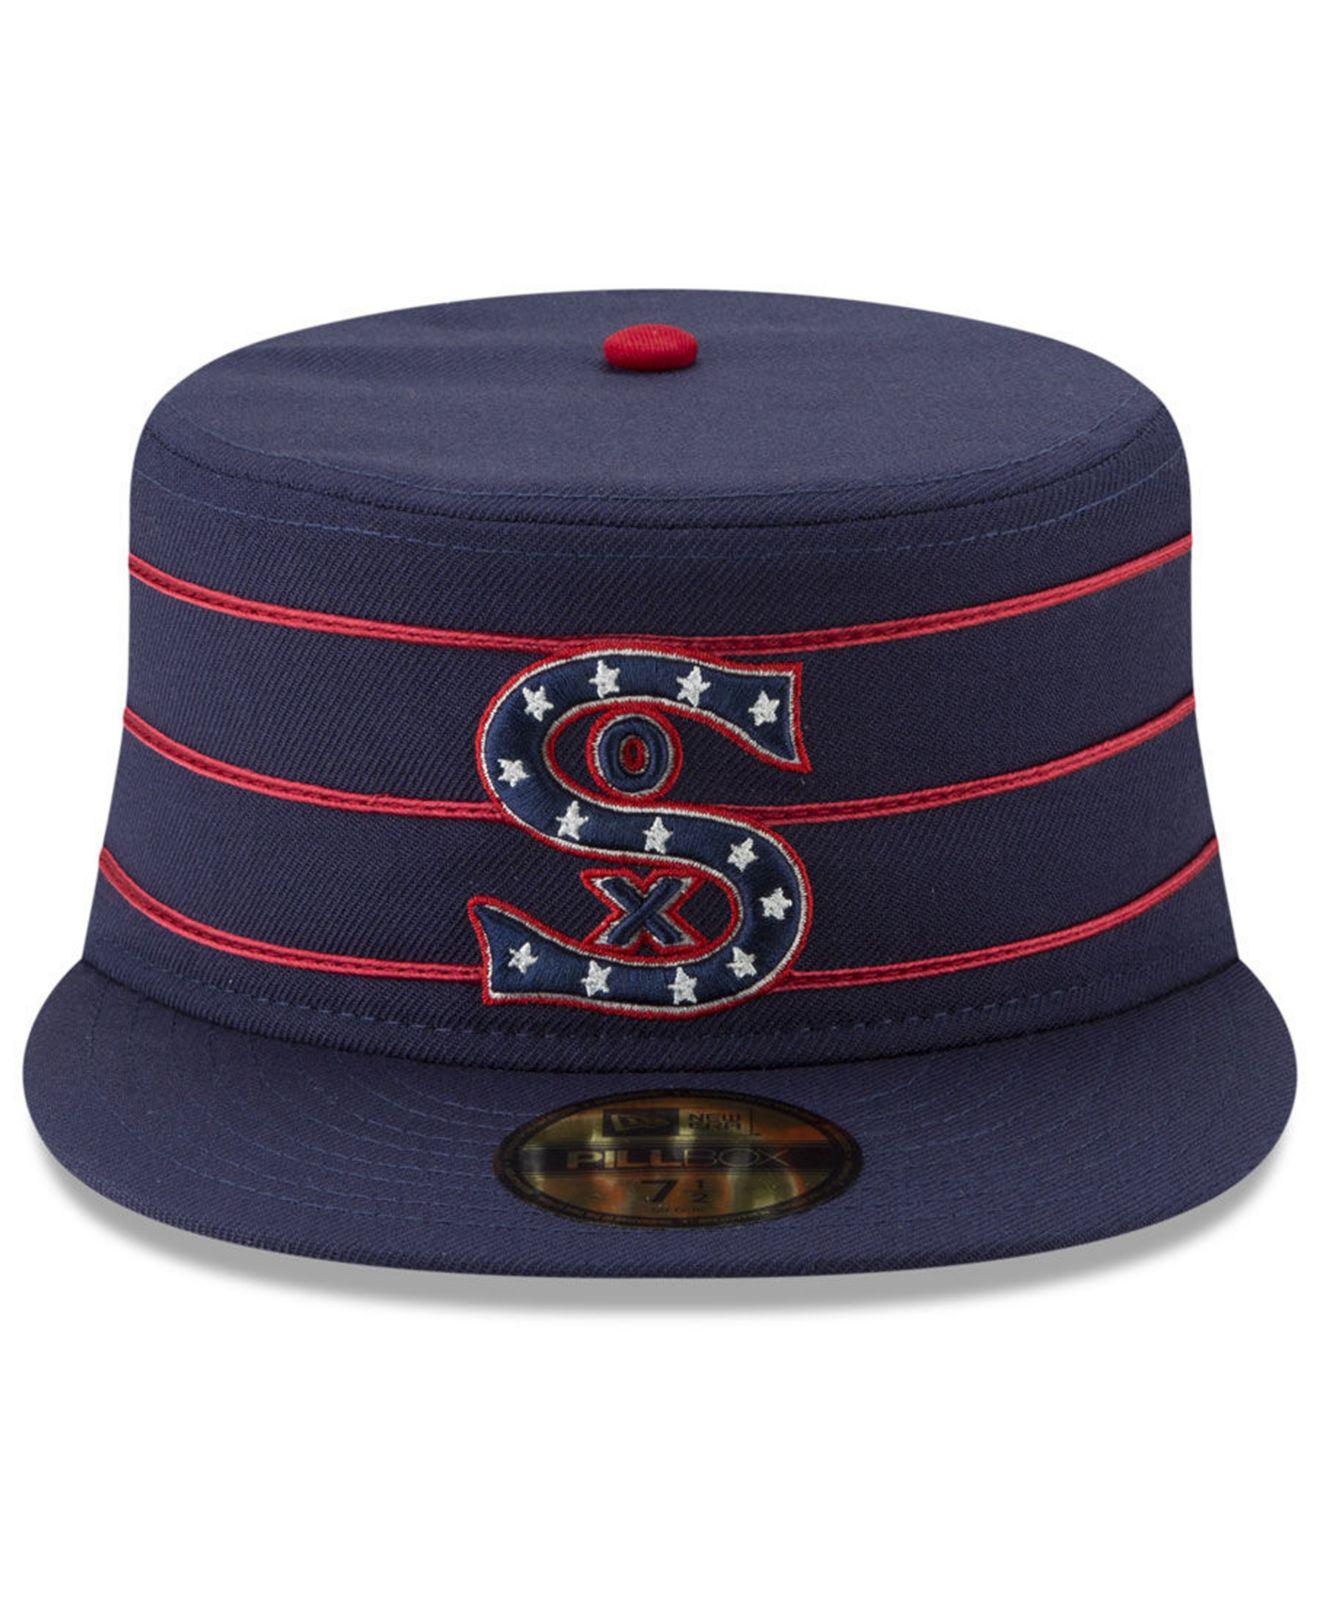 on sale ec6f7 58934 KTZ Chicago White Sox Pillbox 59fifty-fitted Cap in Blue for Men - Lyst